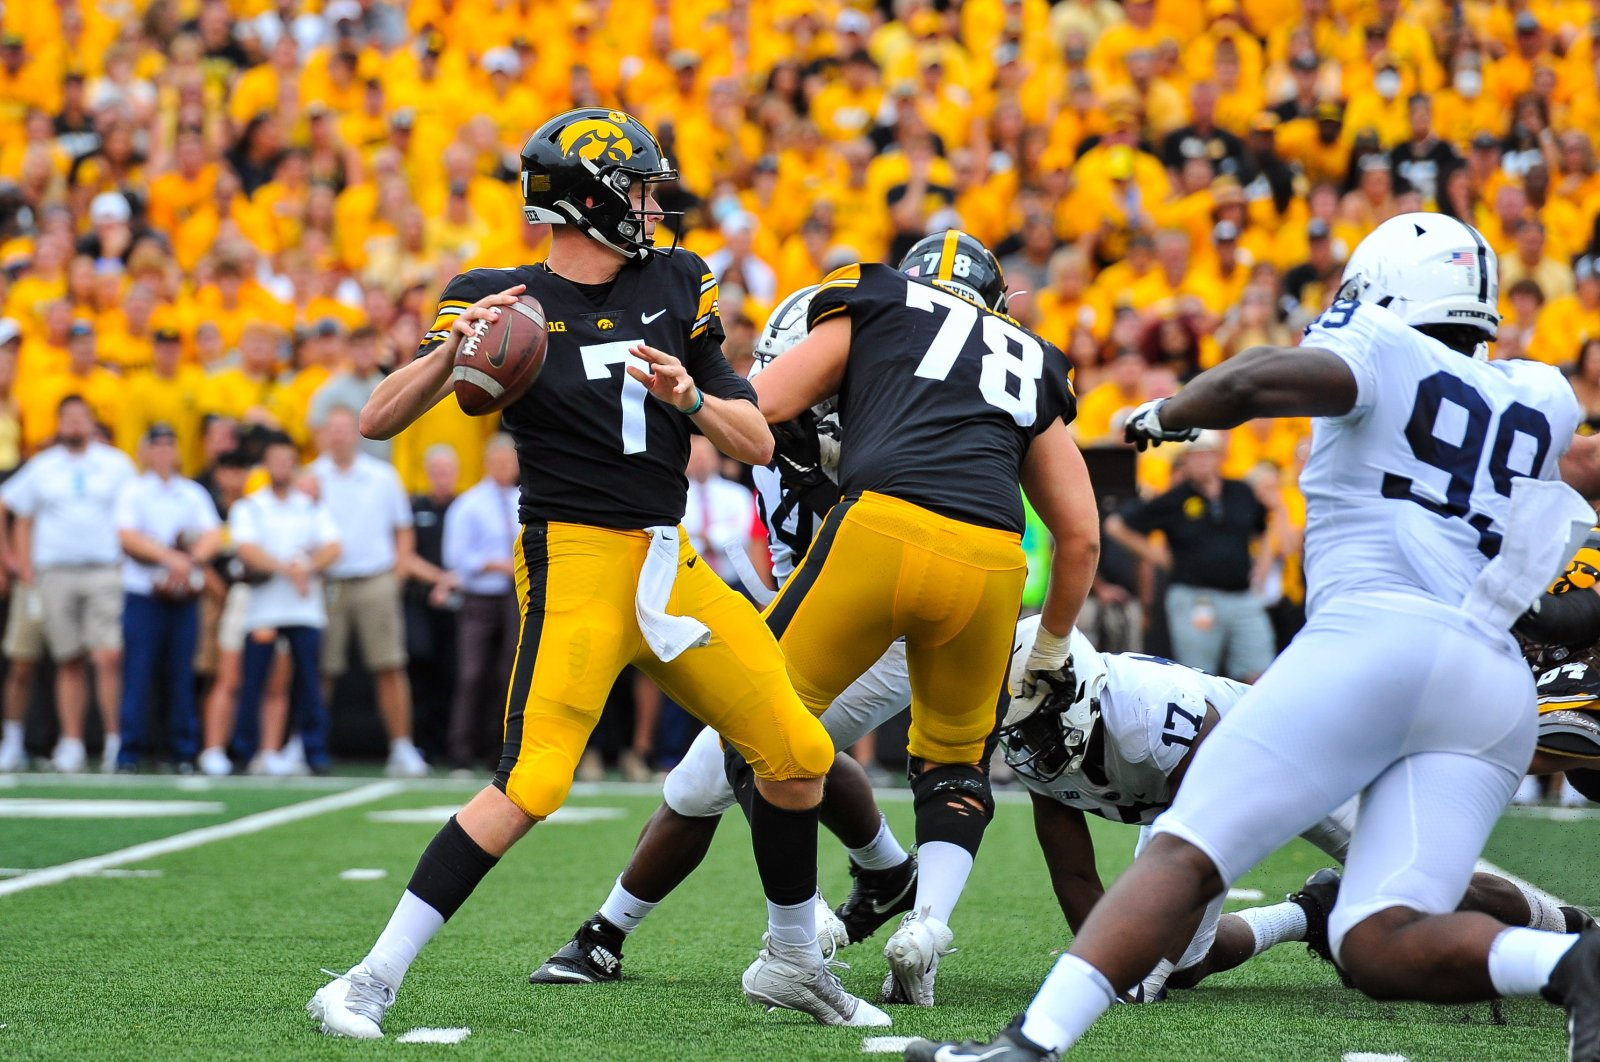 Iowa Hawkeyes quarterback Spencer Petras (7) throws a pass during the second quarter against the Penn State Nittany Lions at Kinnick Stadium, Iowa City, Iowa, Oct. 9, 2021. (Jeffrey Becker-USA TODAY Sports via Reuters)